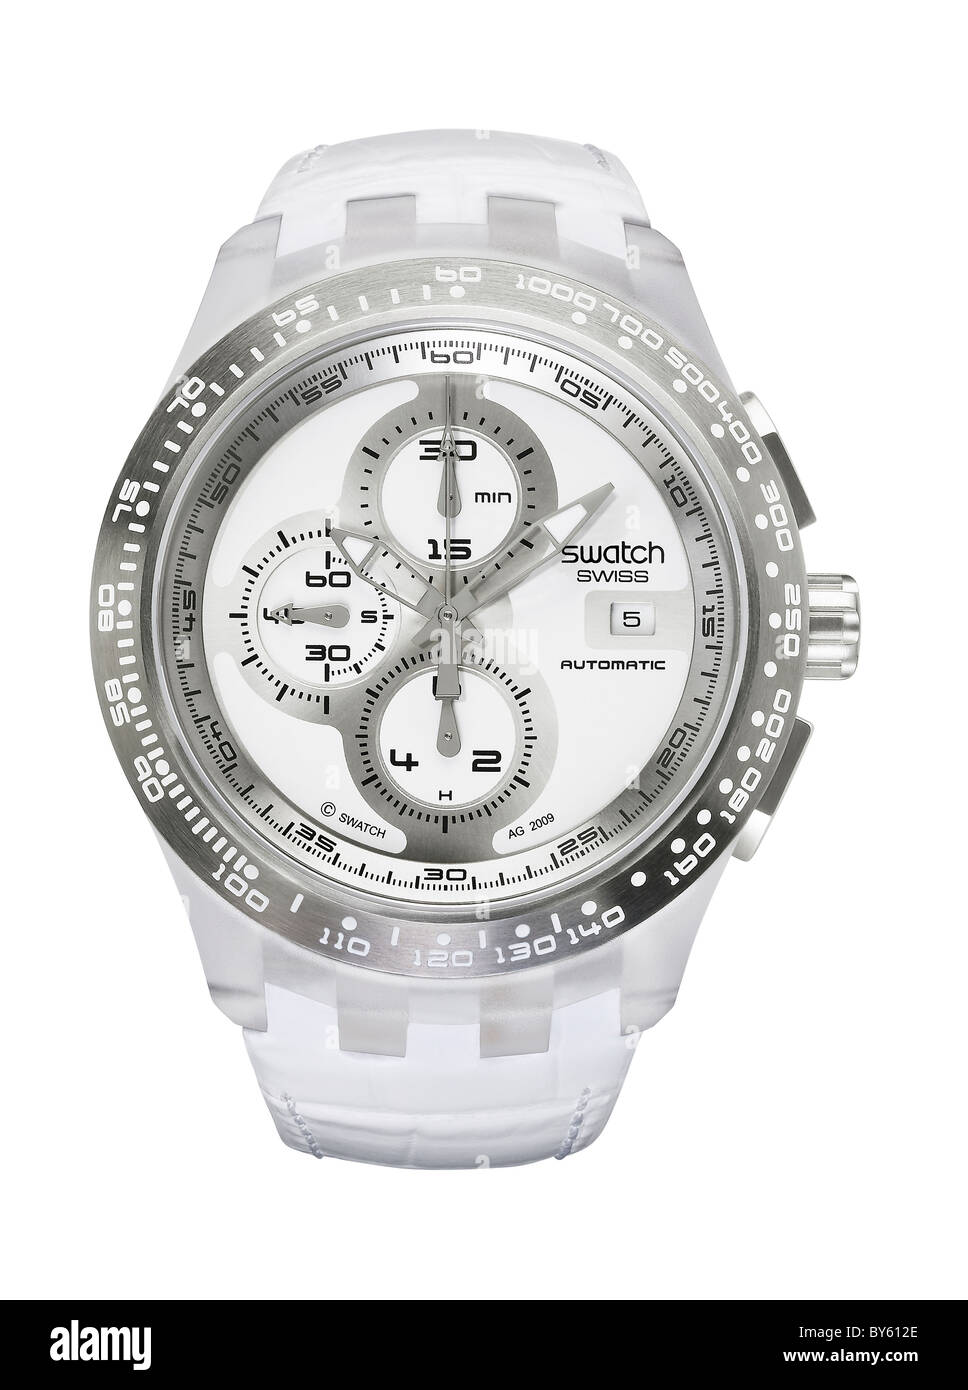 swatch watch in white - Stock Image